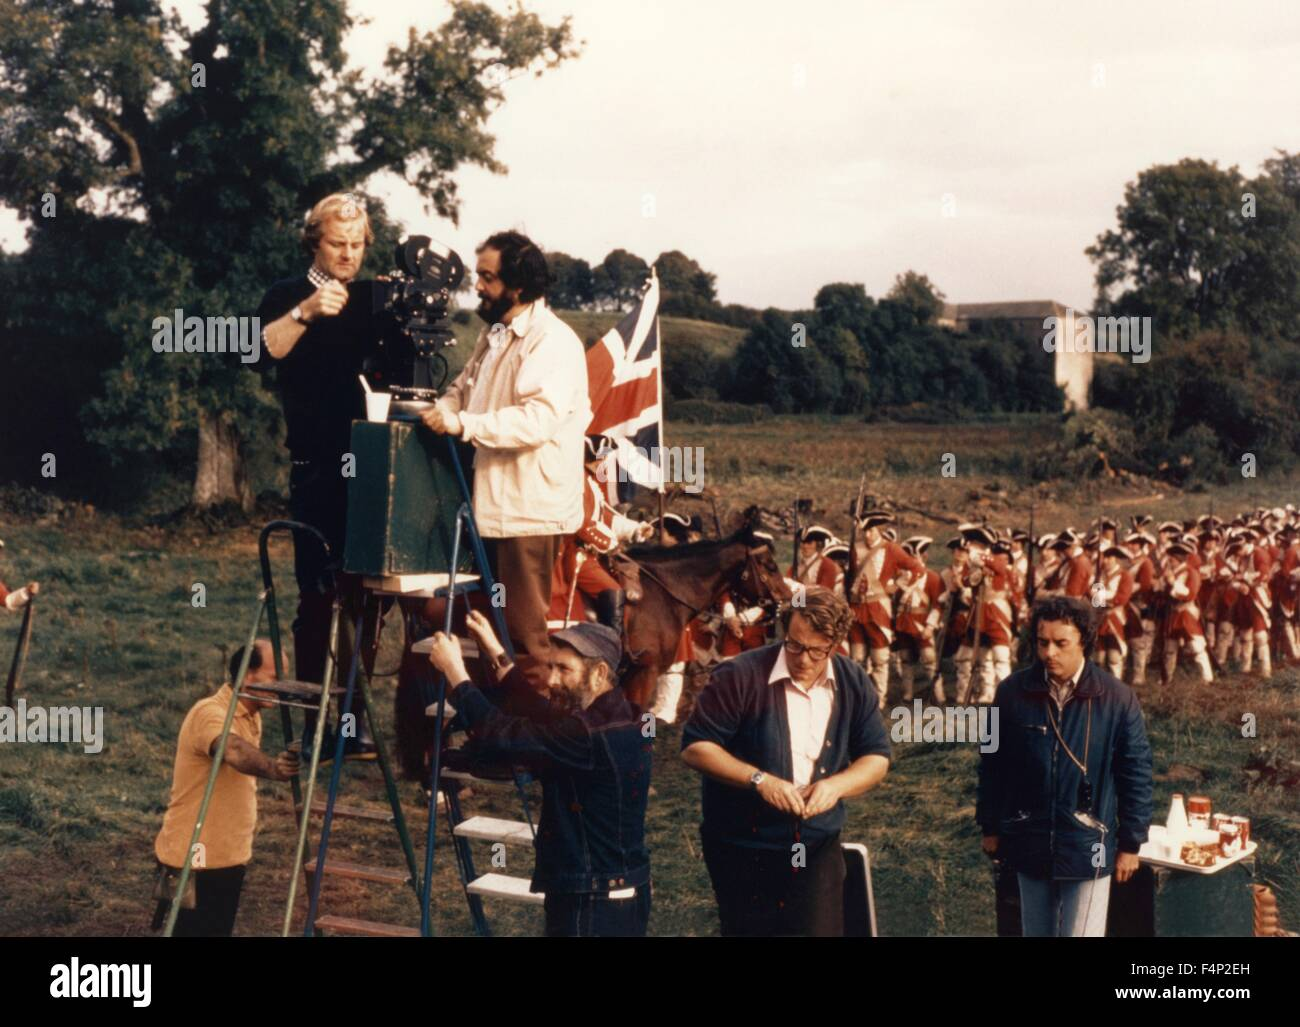 Stanley Kubrick / Barry Lyndon 1975 directed by Stanley Kubrick - Stock Image